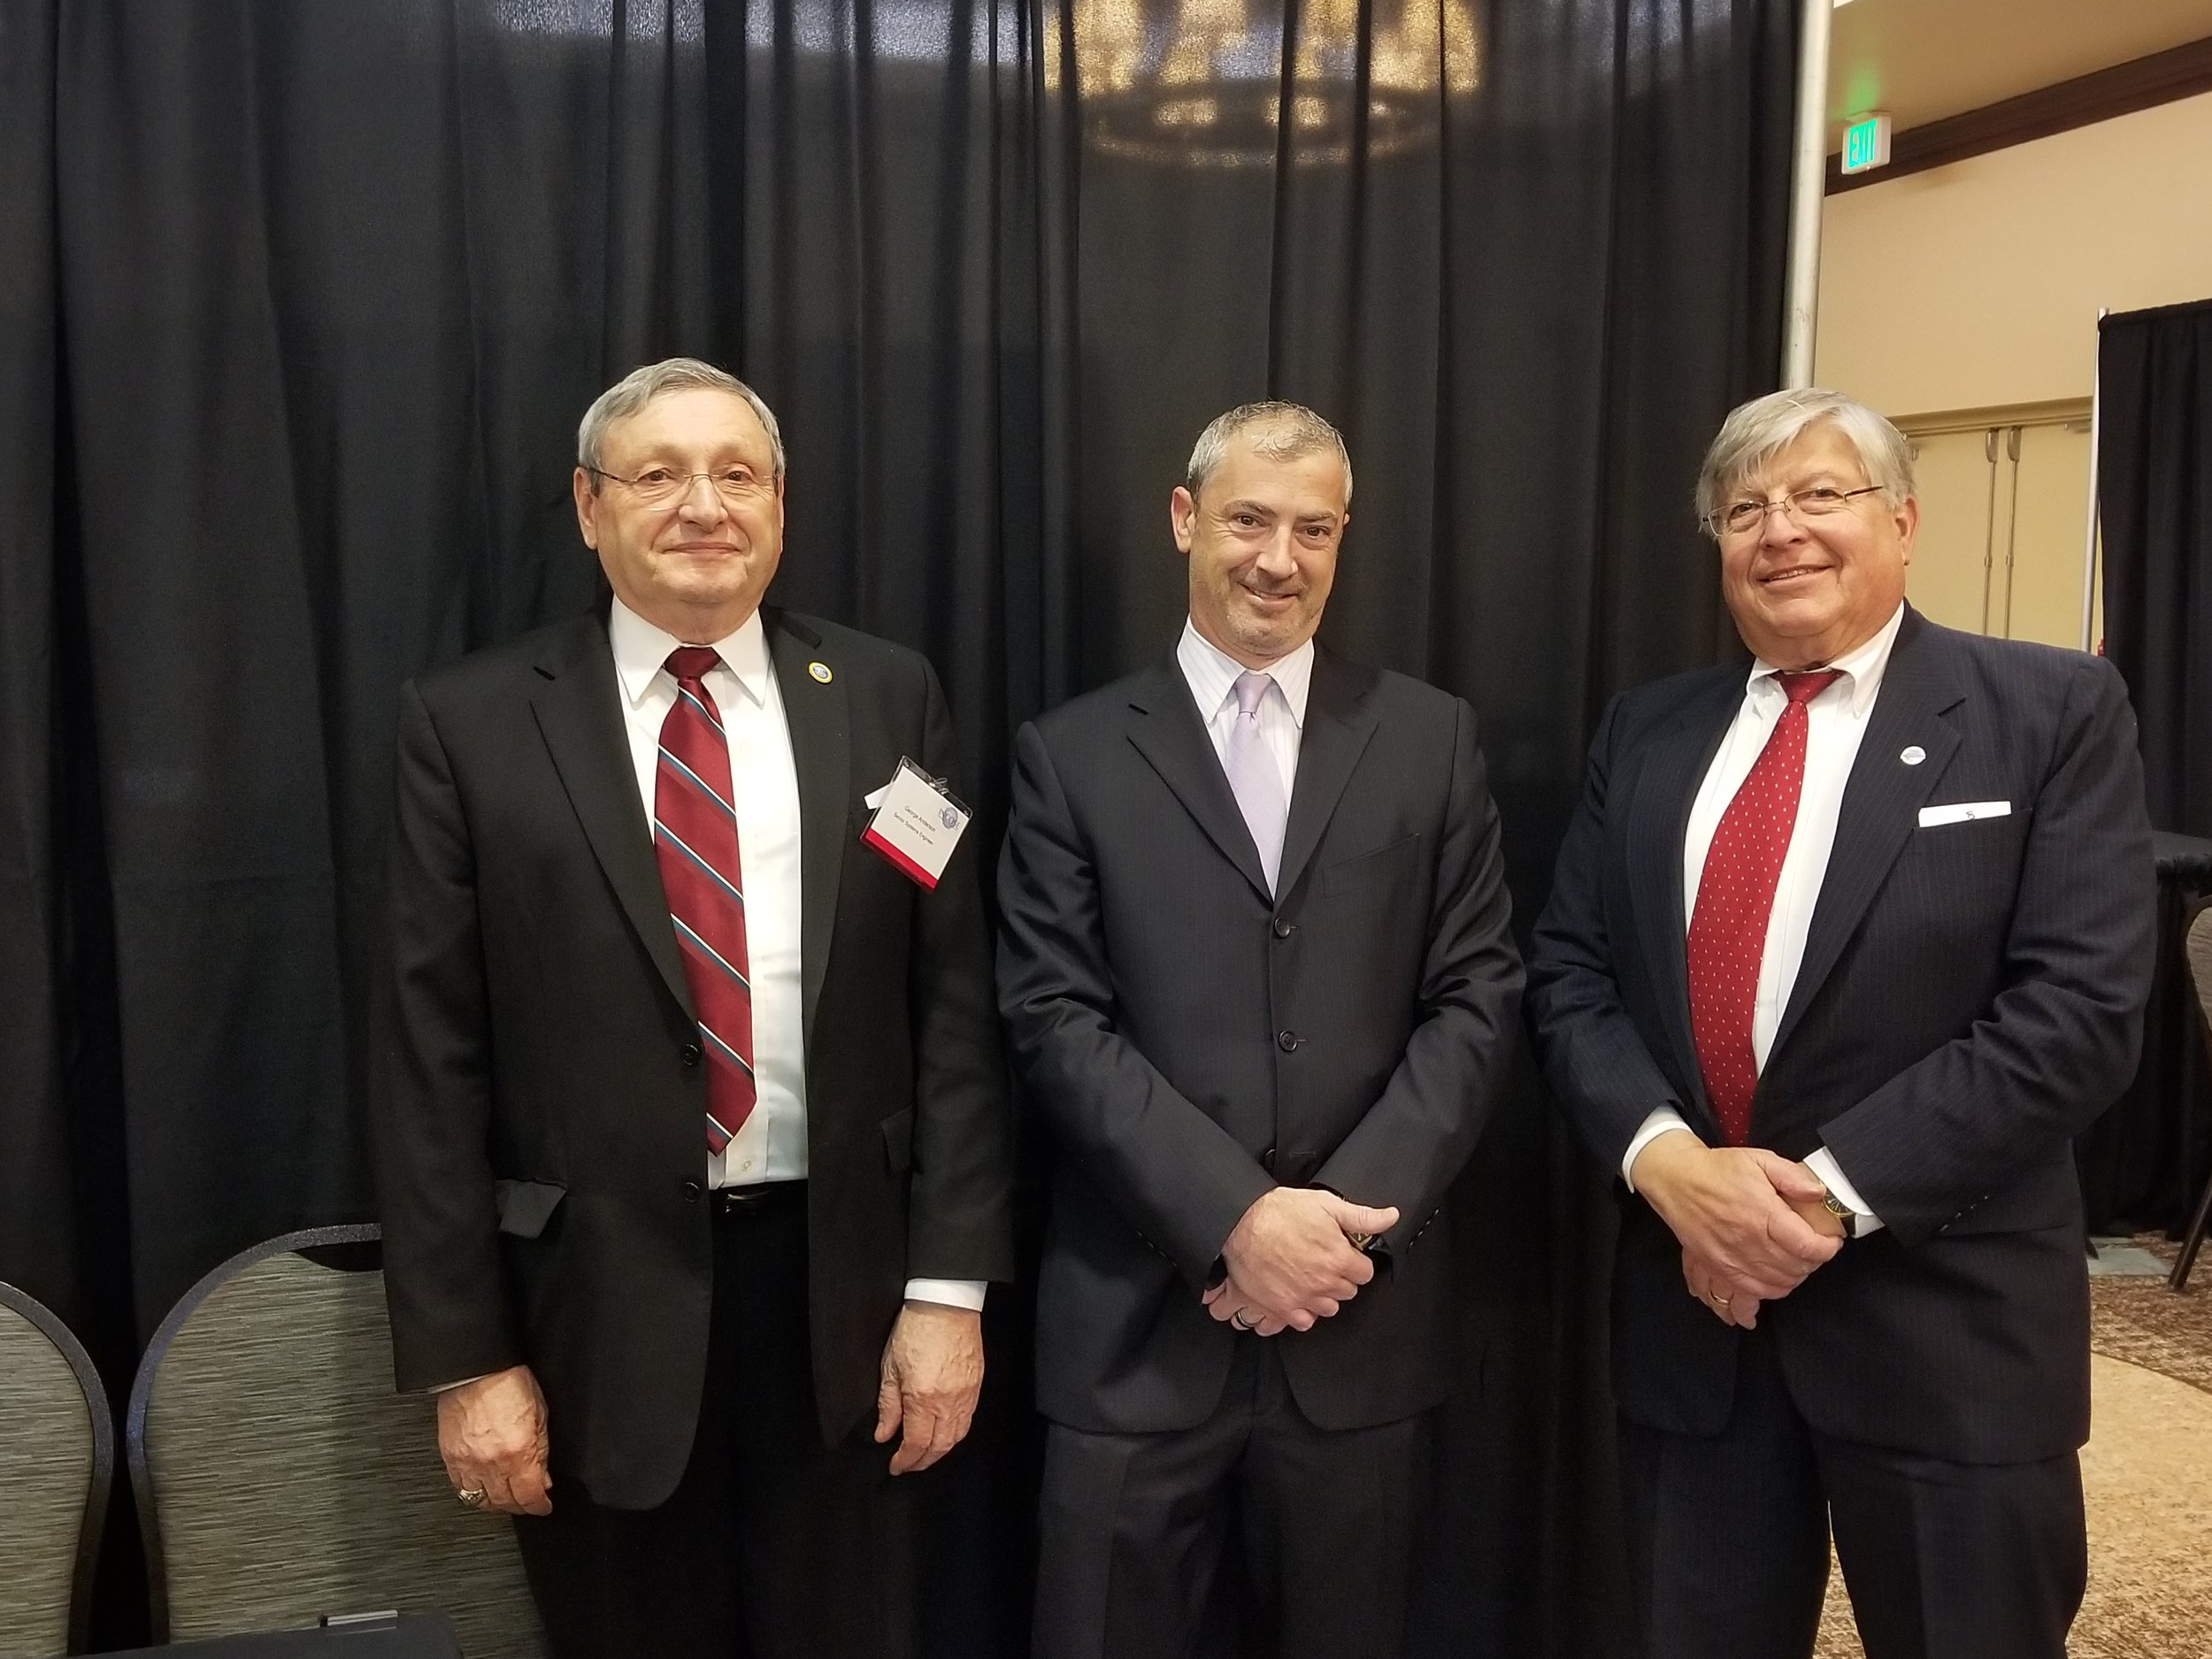 George Anderson, Ken Fuller and Charles at the March 26, 2018 reStart job fair